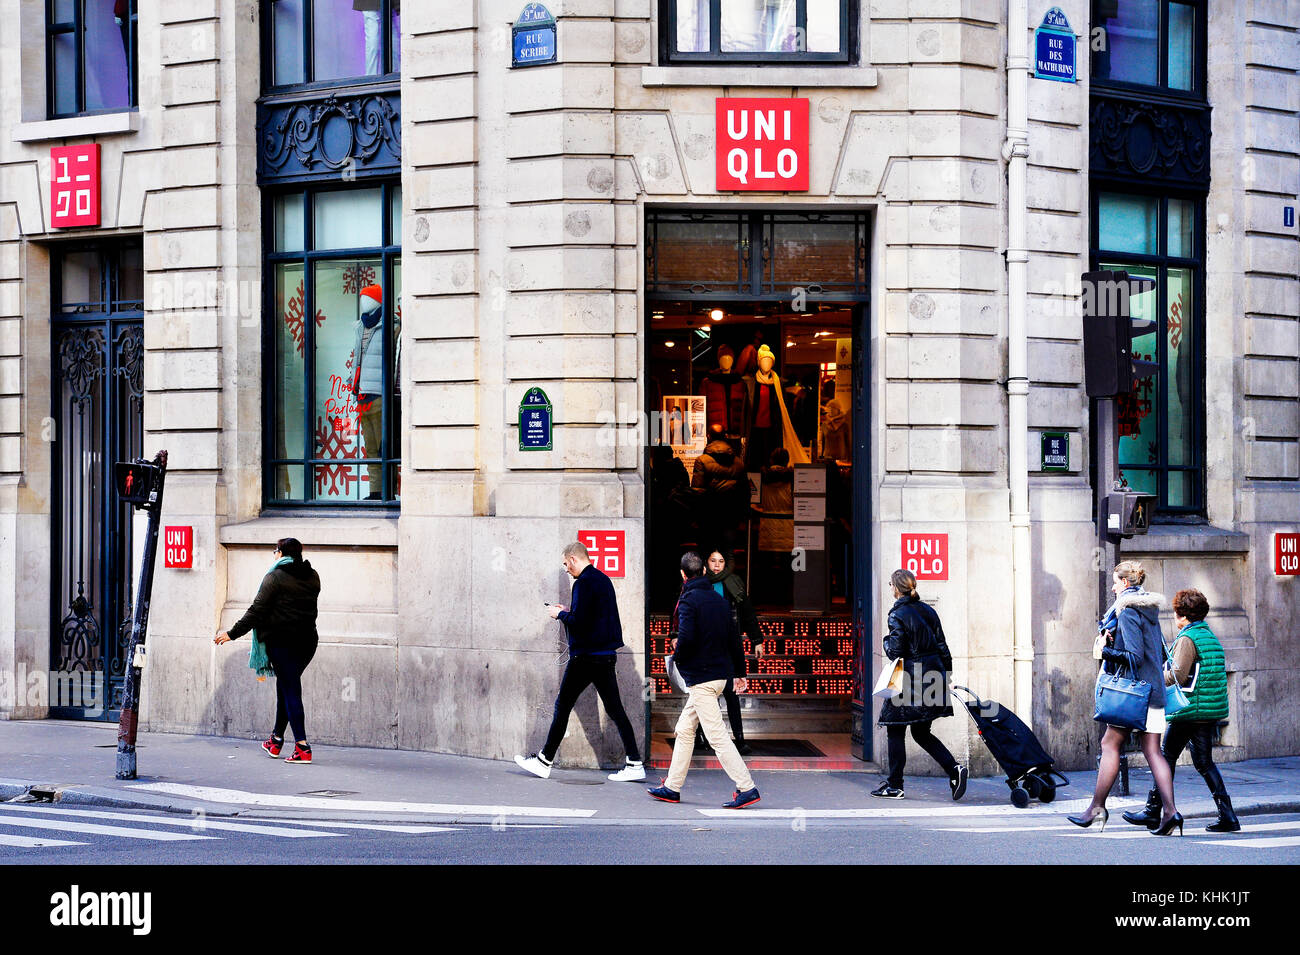 Uniqlo Flagship, Opéra - Paris- France Stock Photo - Alamy